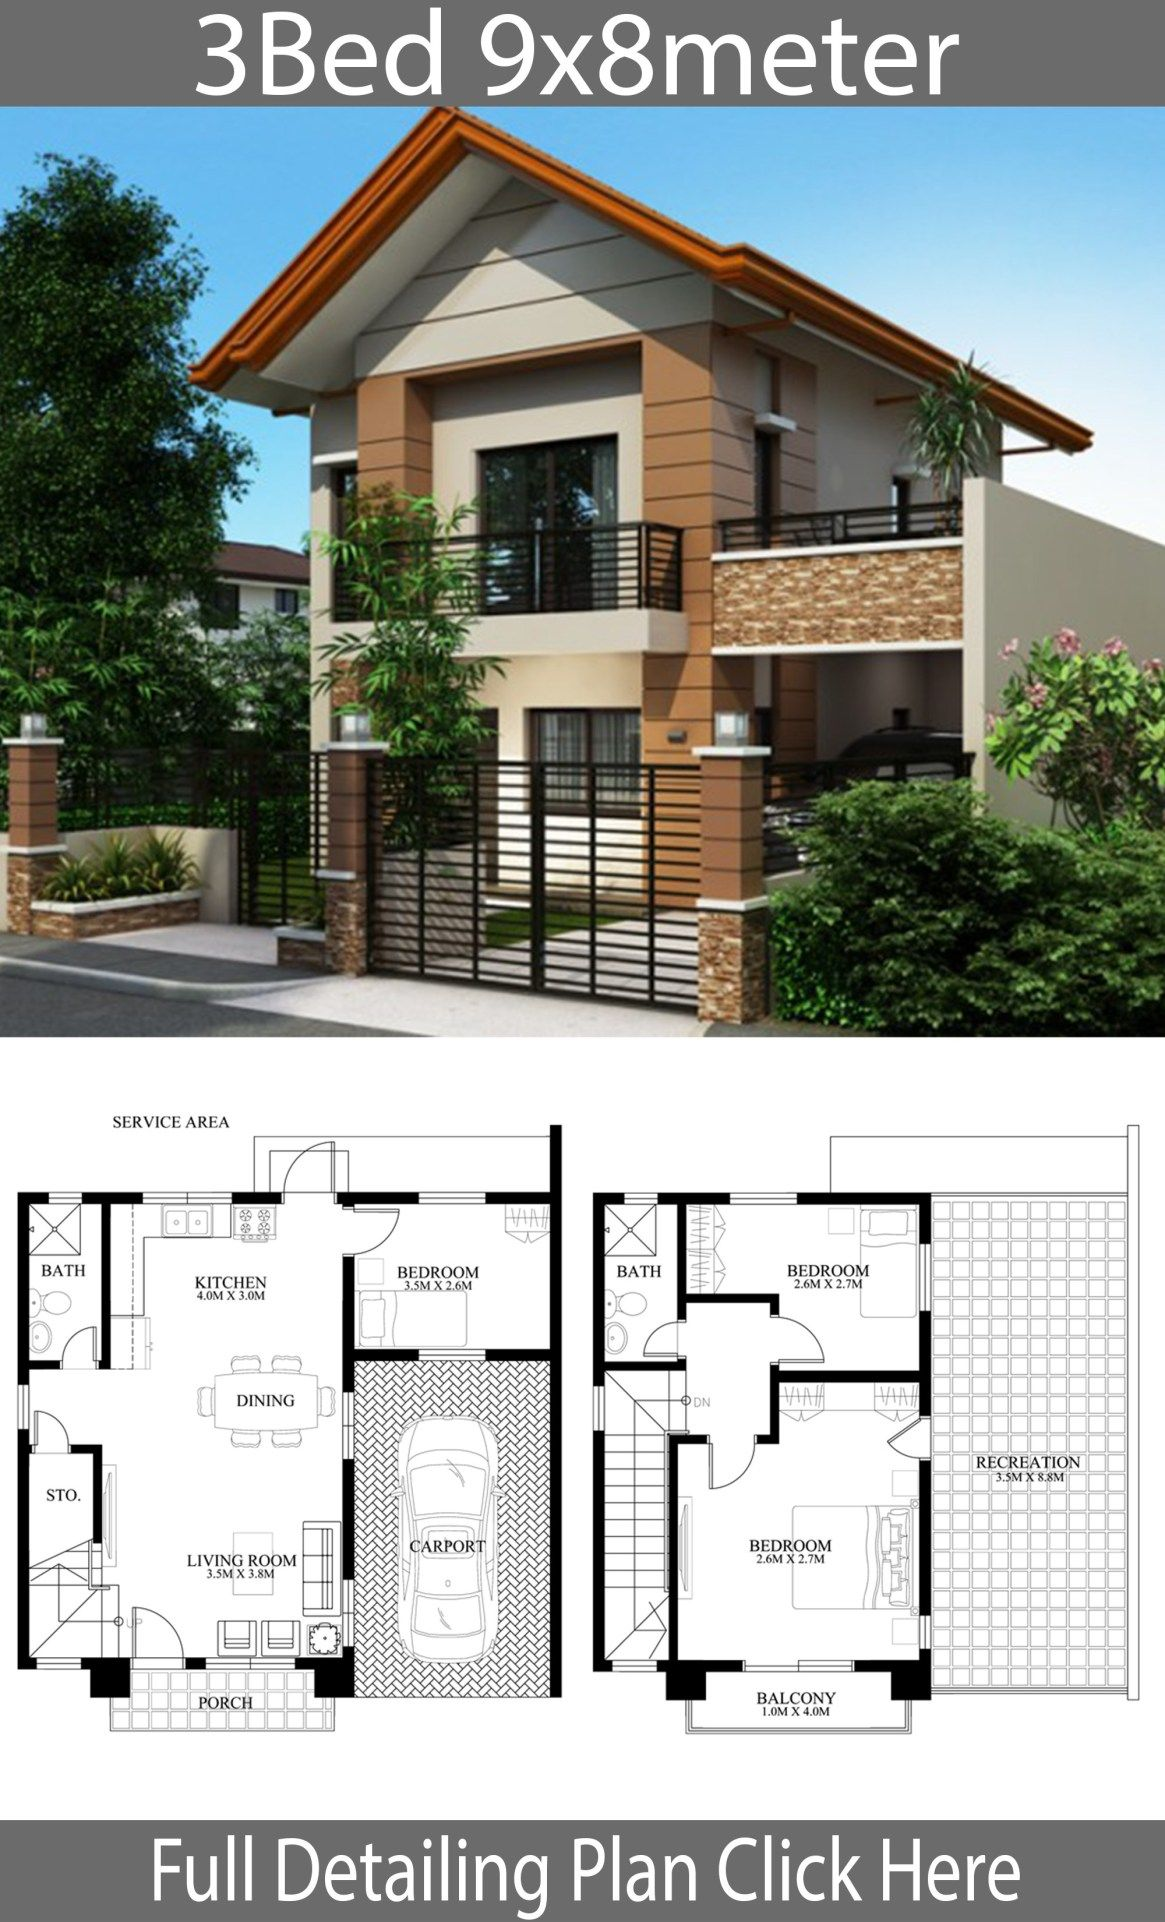 Home Design Plan 9x8m With 3 Bedrooms Home Design With Plansearch Philippines House Design 2 Storey House Design Duplex House Design